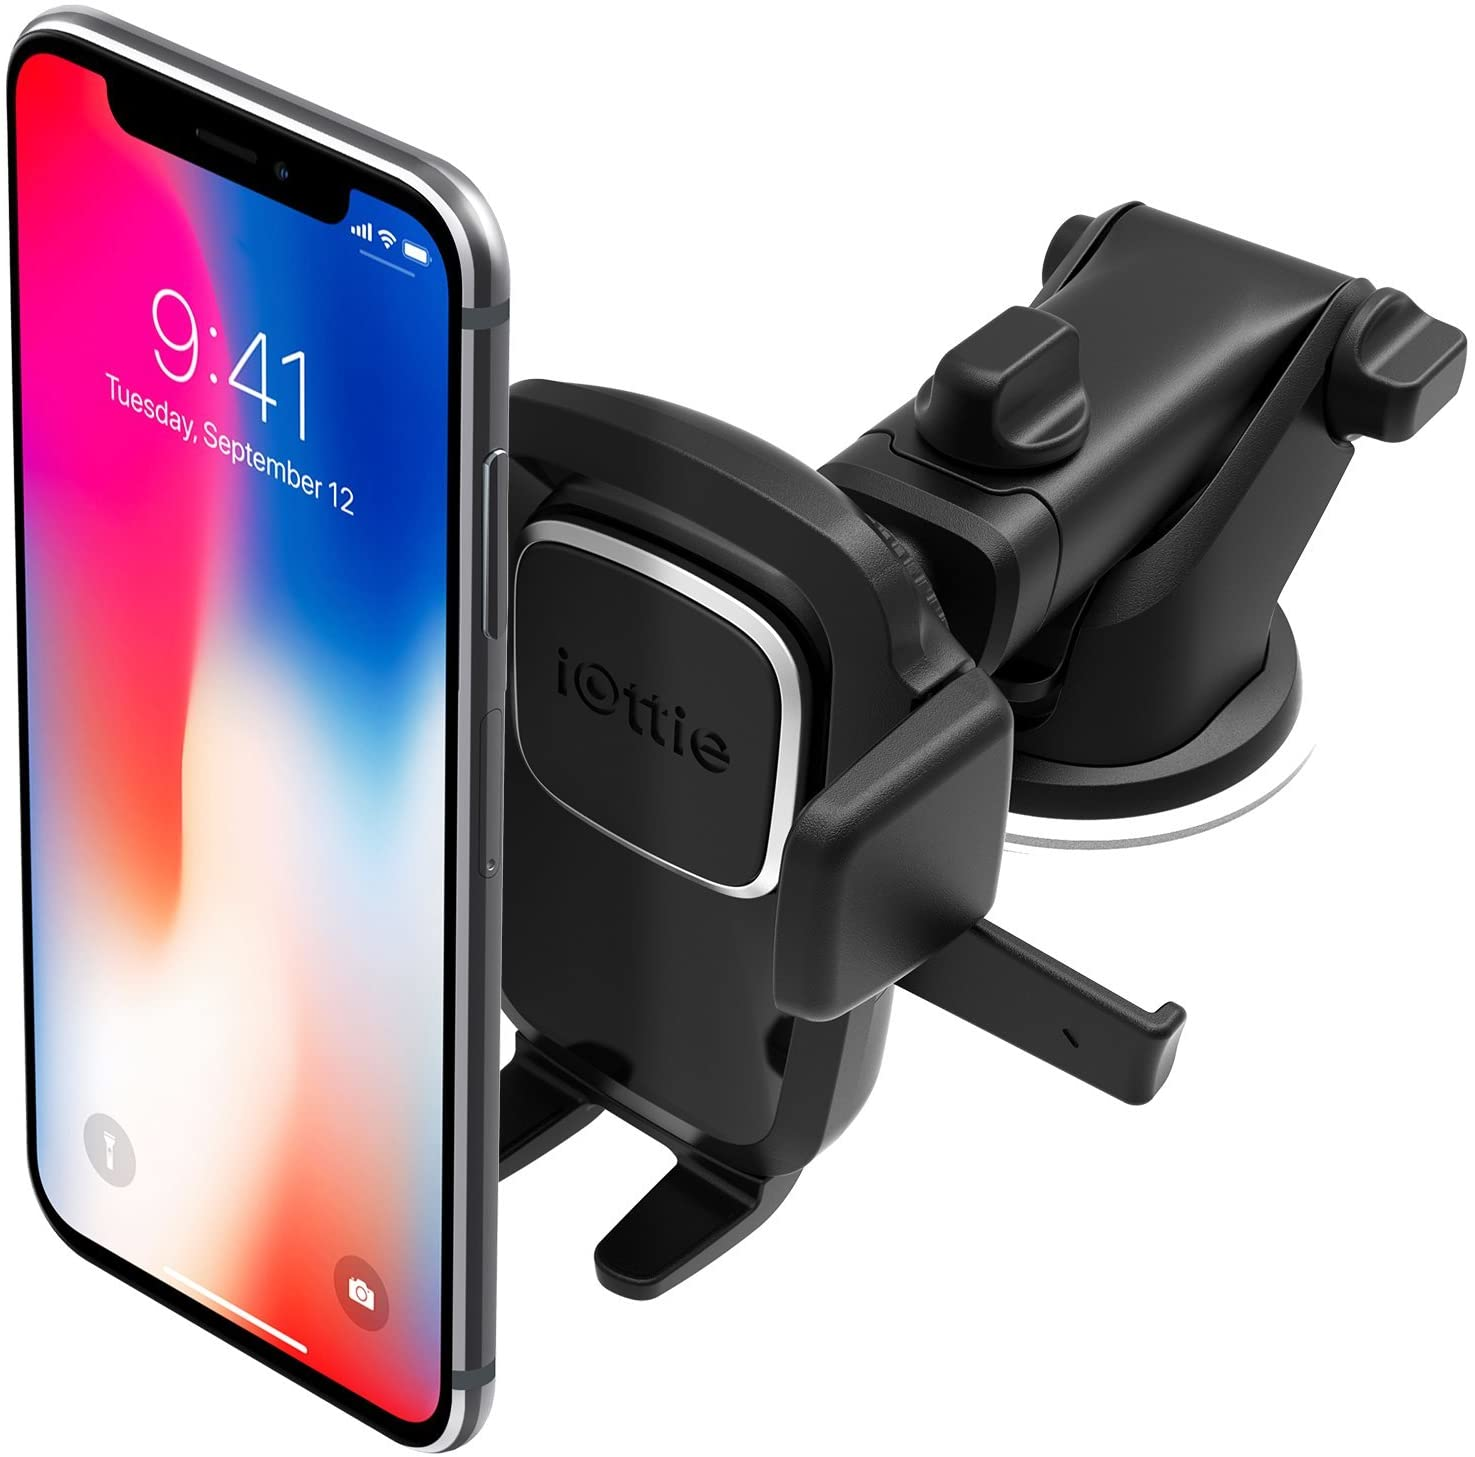 Car Phone Mounts 3 Packs,Magnetic Car Phone Holder,Windshield Car Mount Phone Holder,Universal Smartphone Car Air Vent Mount Holder for All Kinds of Smartphones Silver